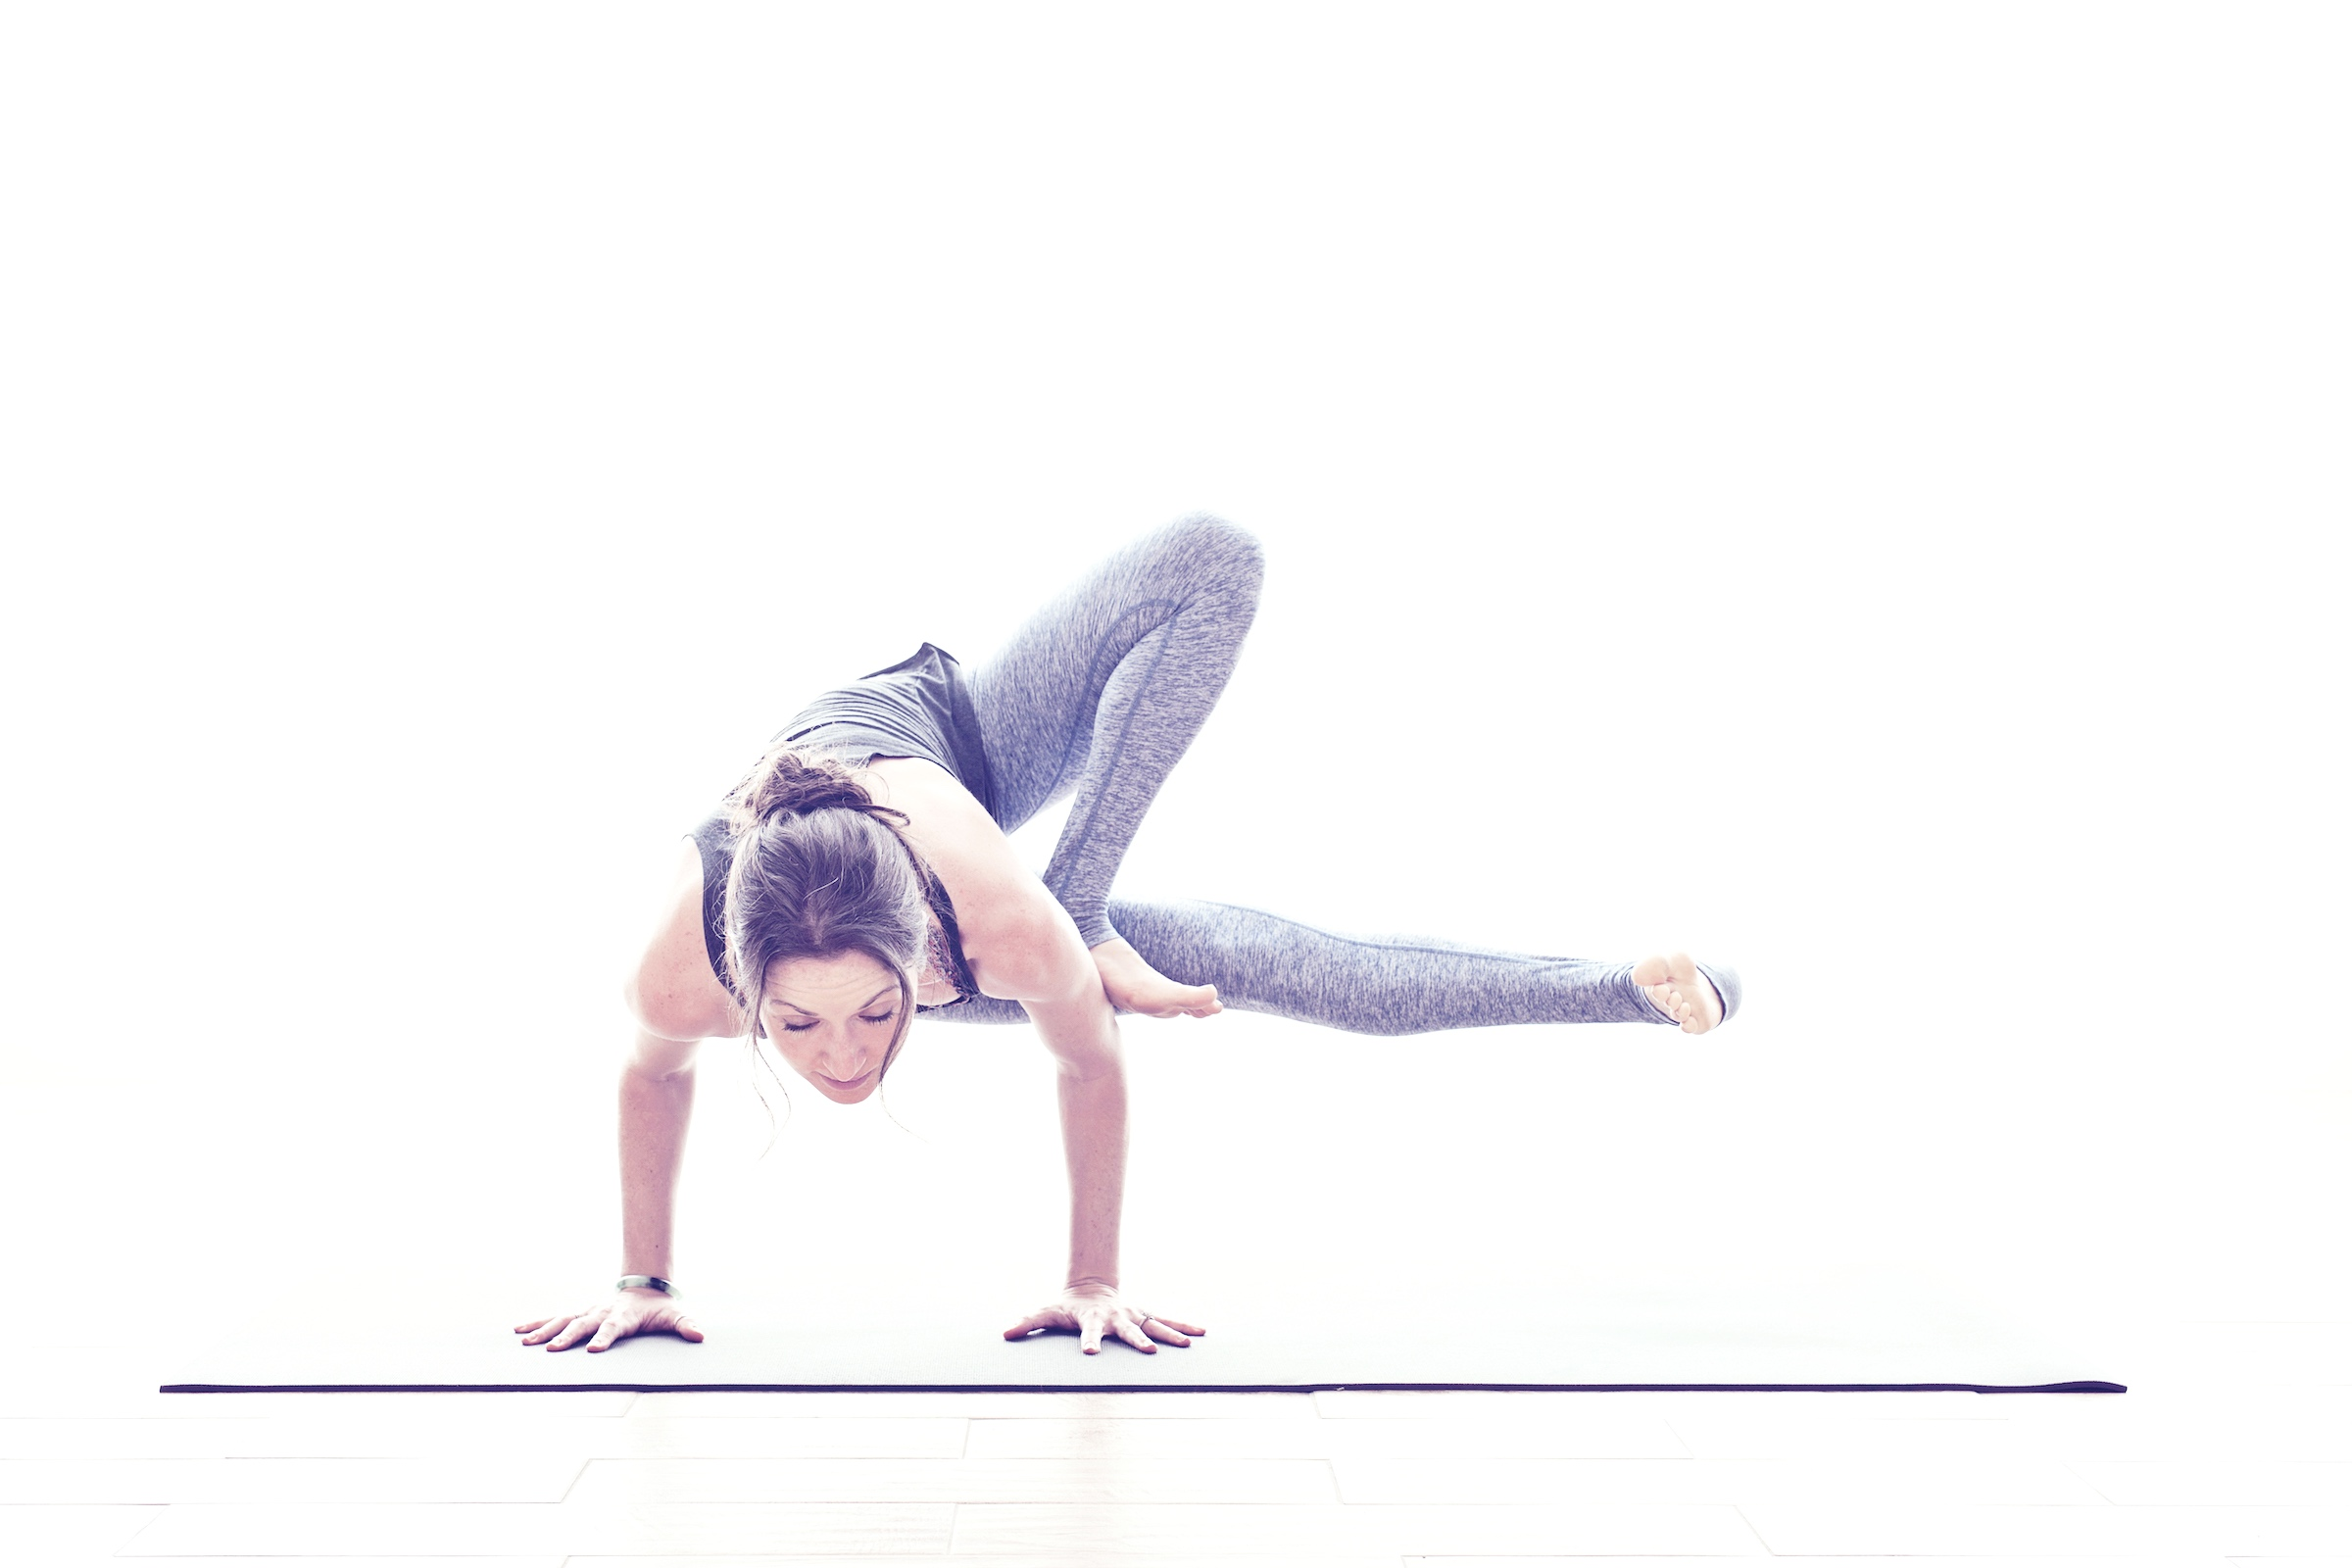 Vinyasa  Vinyasa derived from Ashtanga yoga. Movement is linked to the breath, with a focus on flexibility, strength and balance. All of our vinyasa classes are multi-level. We welcome you wherever you are in your practice.